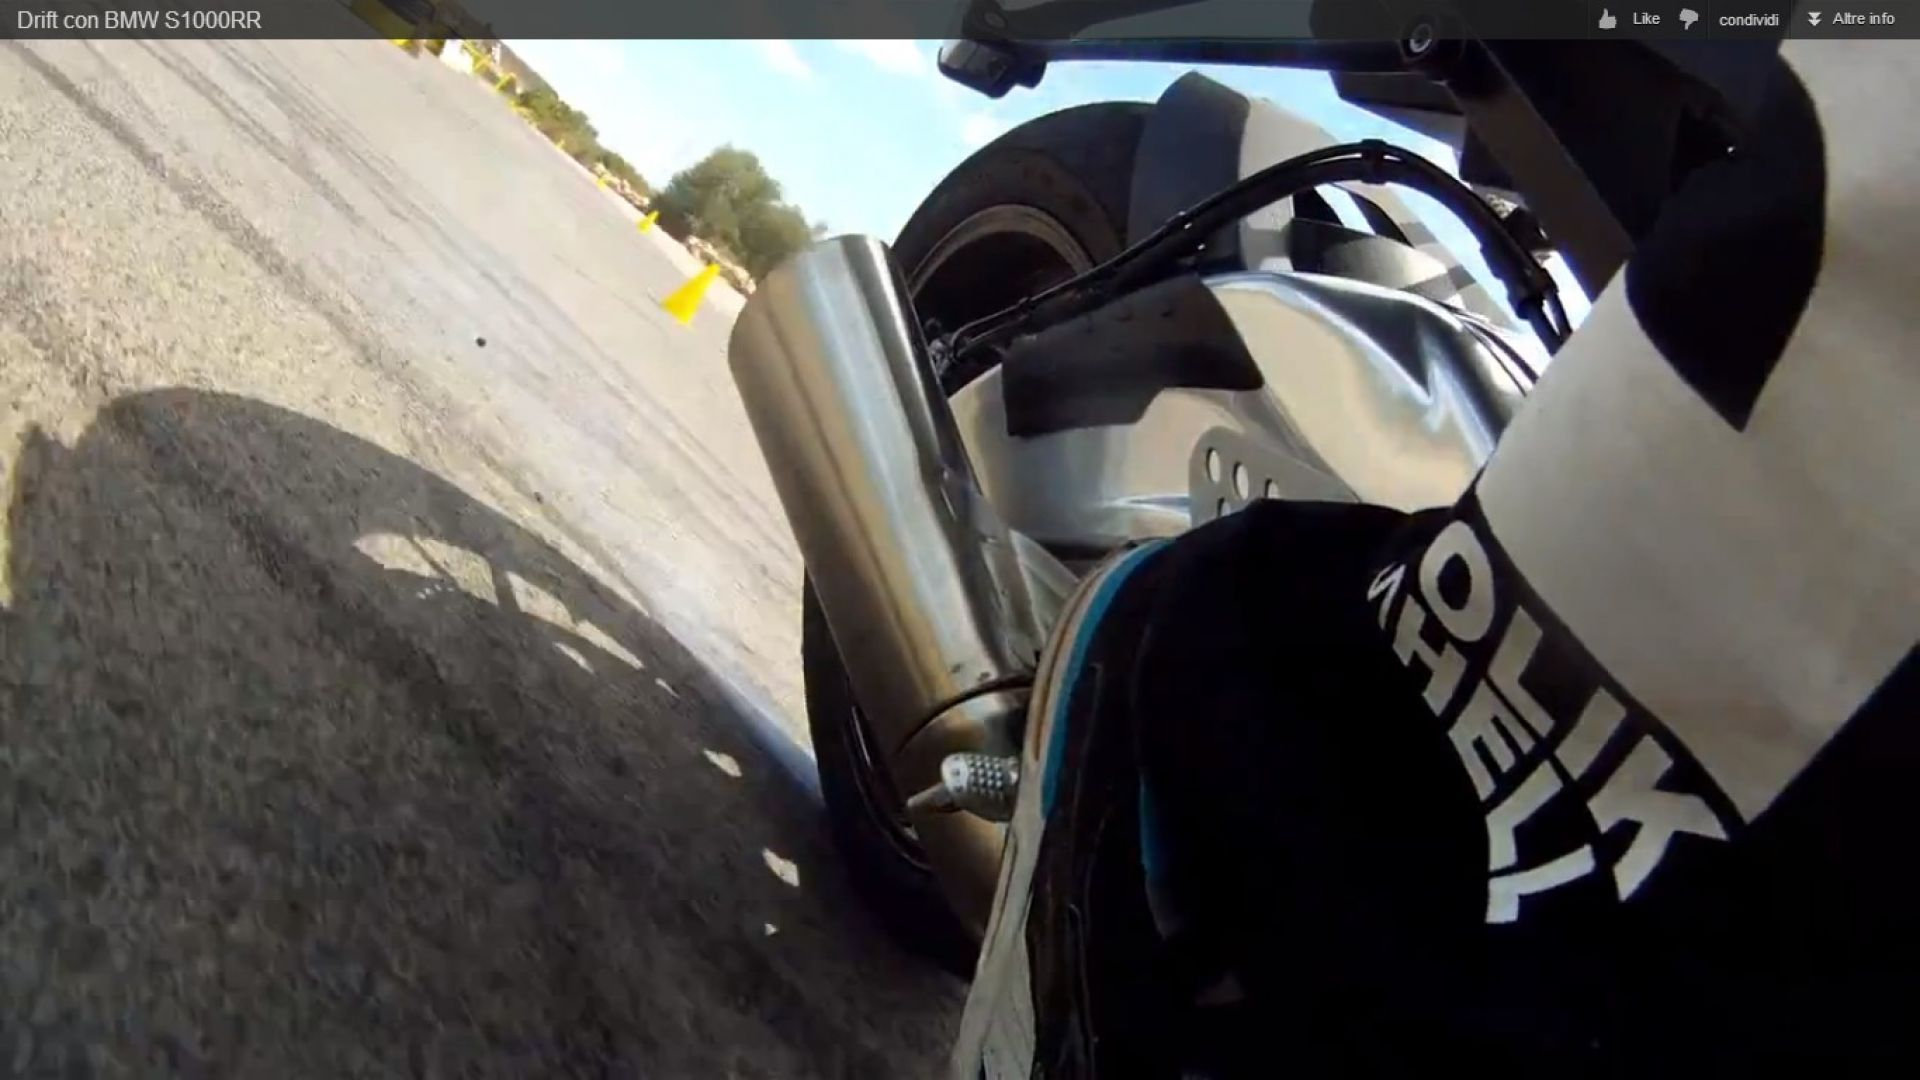 Immagine 10: BMW S1000RR in drift, il video